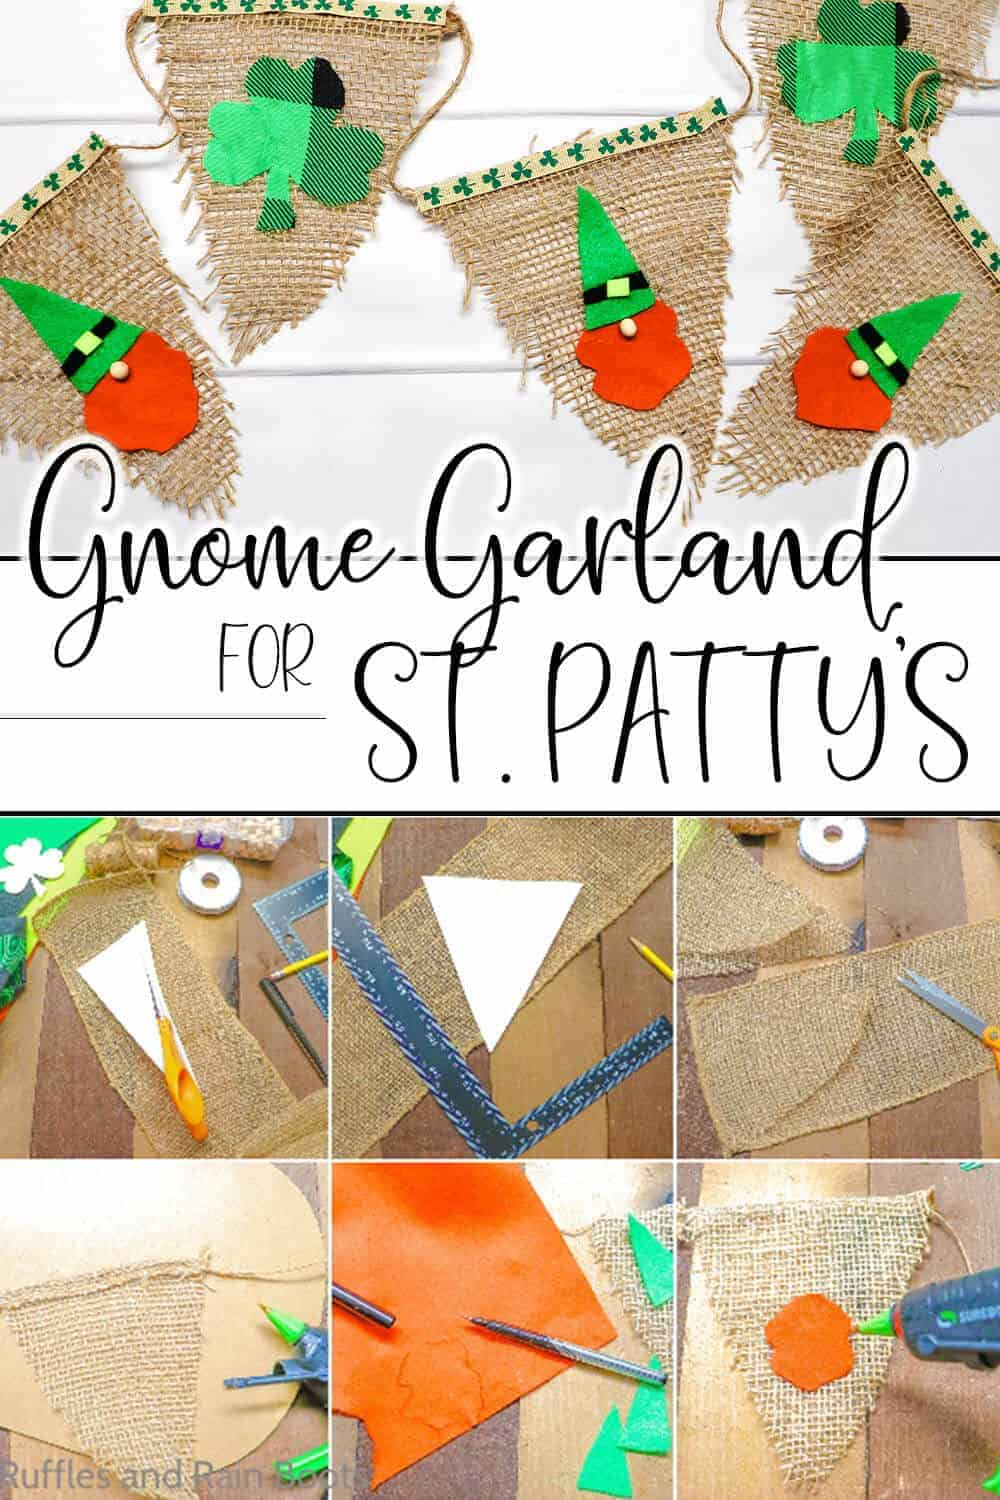 photo collage of how to make a saint patricks day gnome garland with text which reads gnome garland for st. patty's